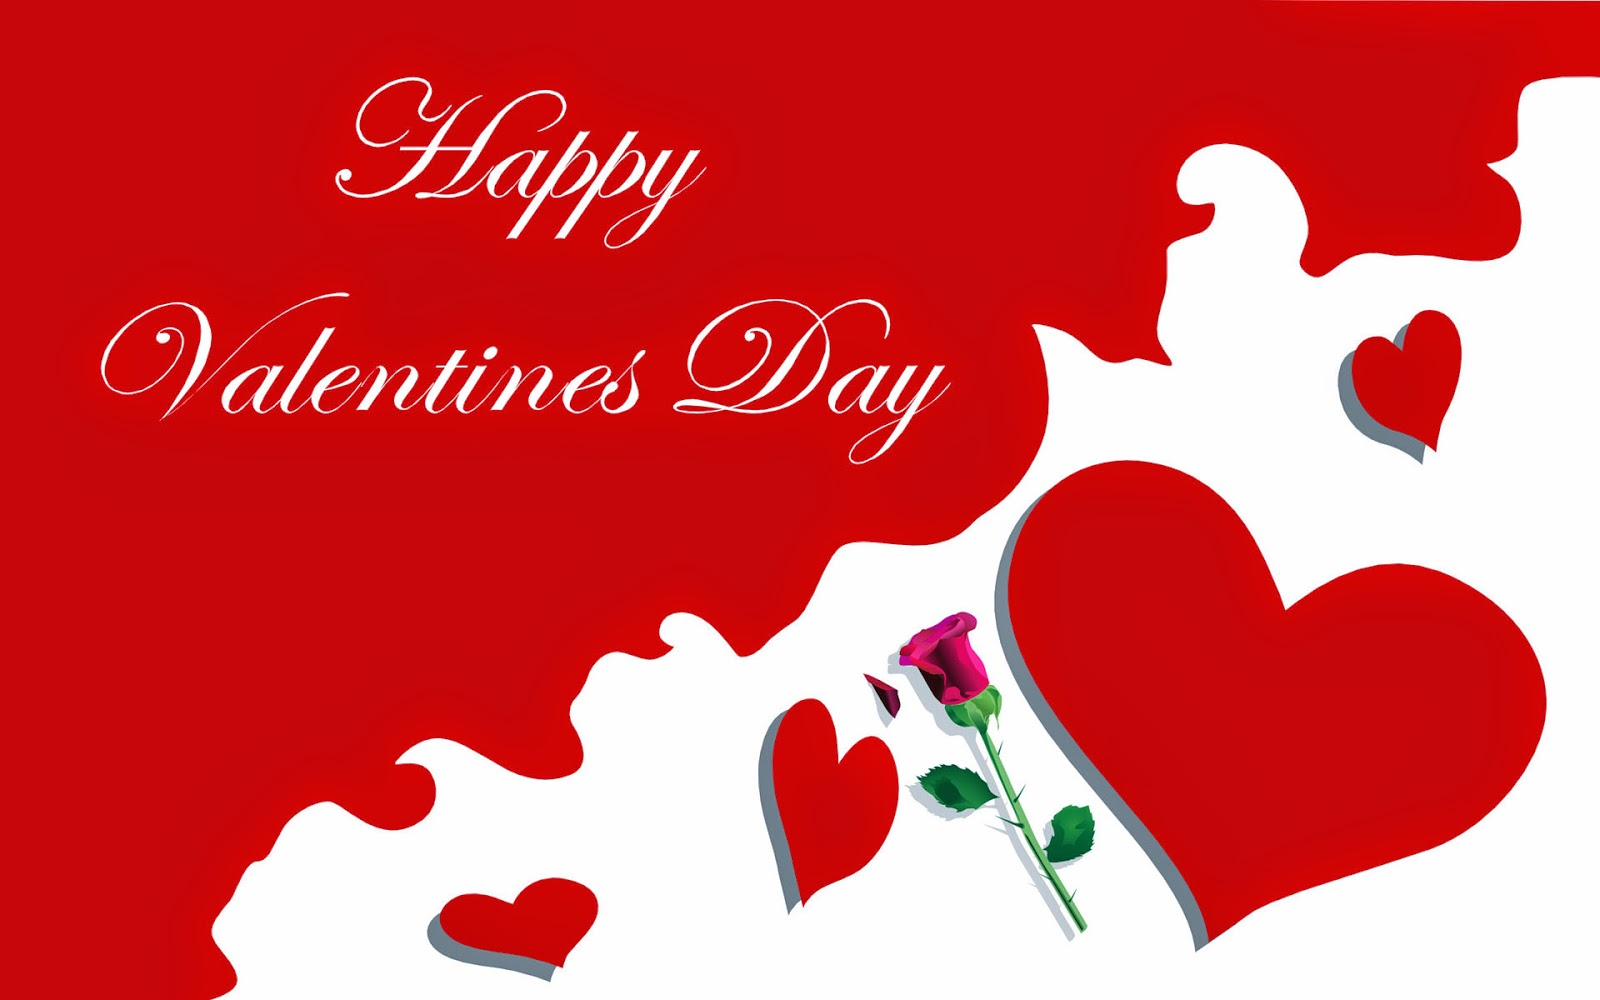 Happy Valentines Day 2015 Facebook Cover Photos Profile Pictures – Valentine Cards for Facebook